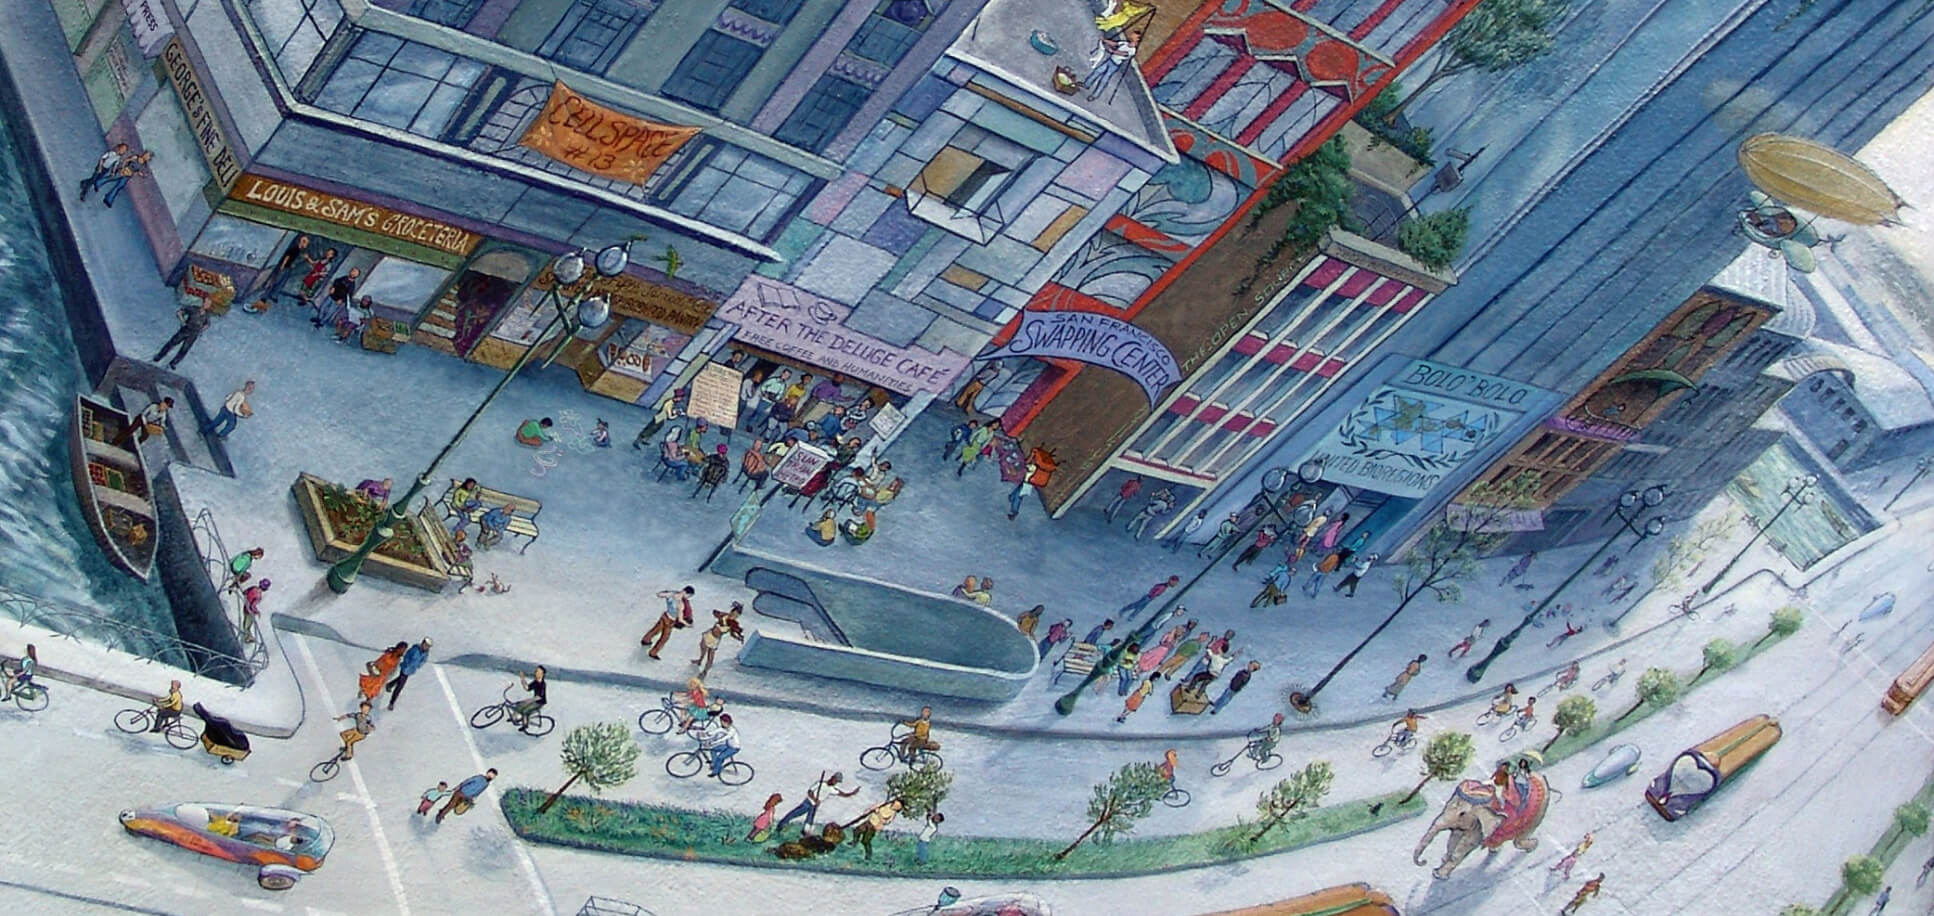 The last panel of the Market Street Railway mural portraying the future